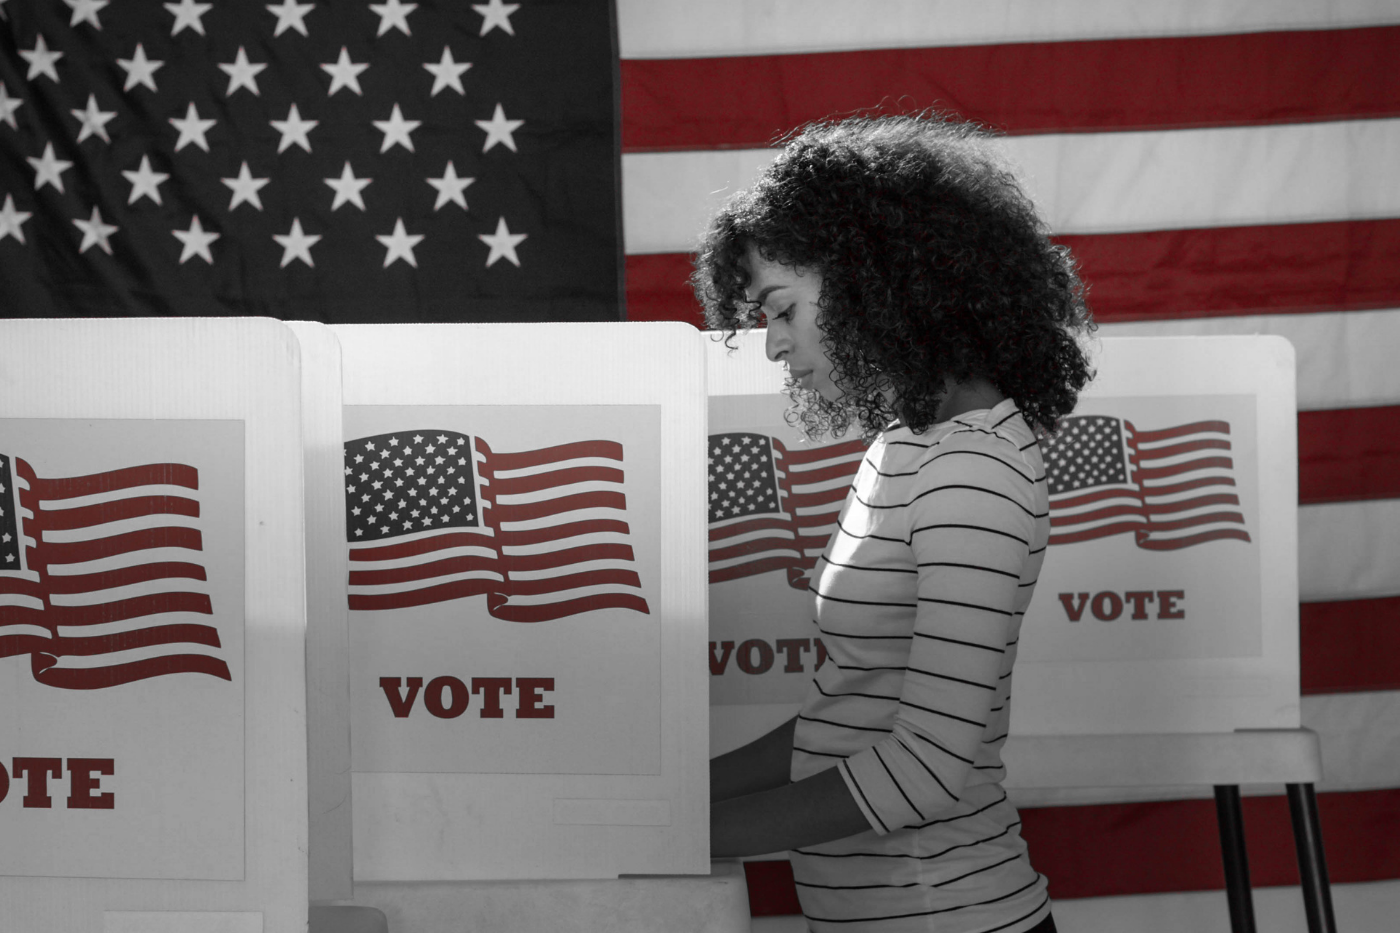 Vote Choice of Latino Voters in the 2020 Presidential Election